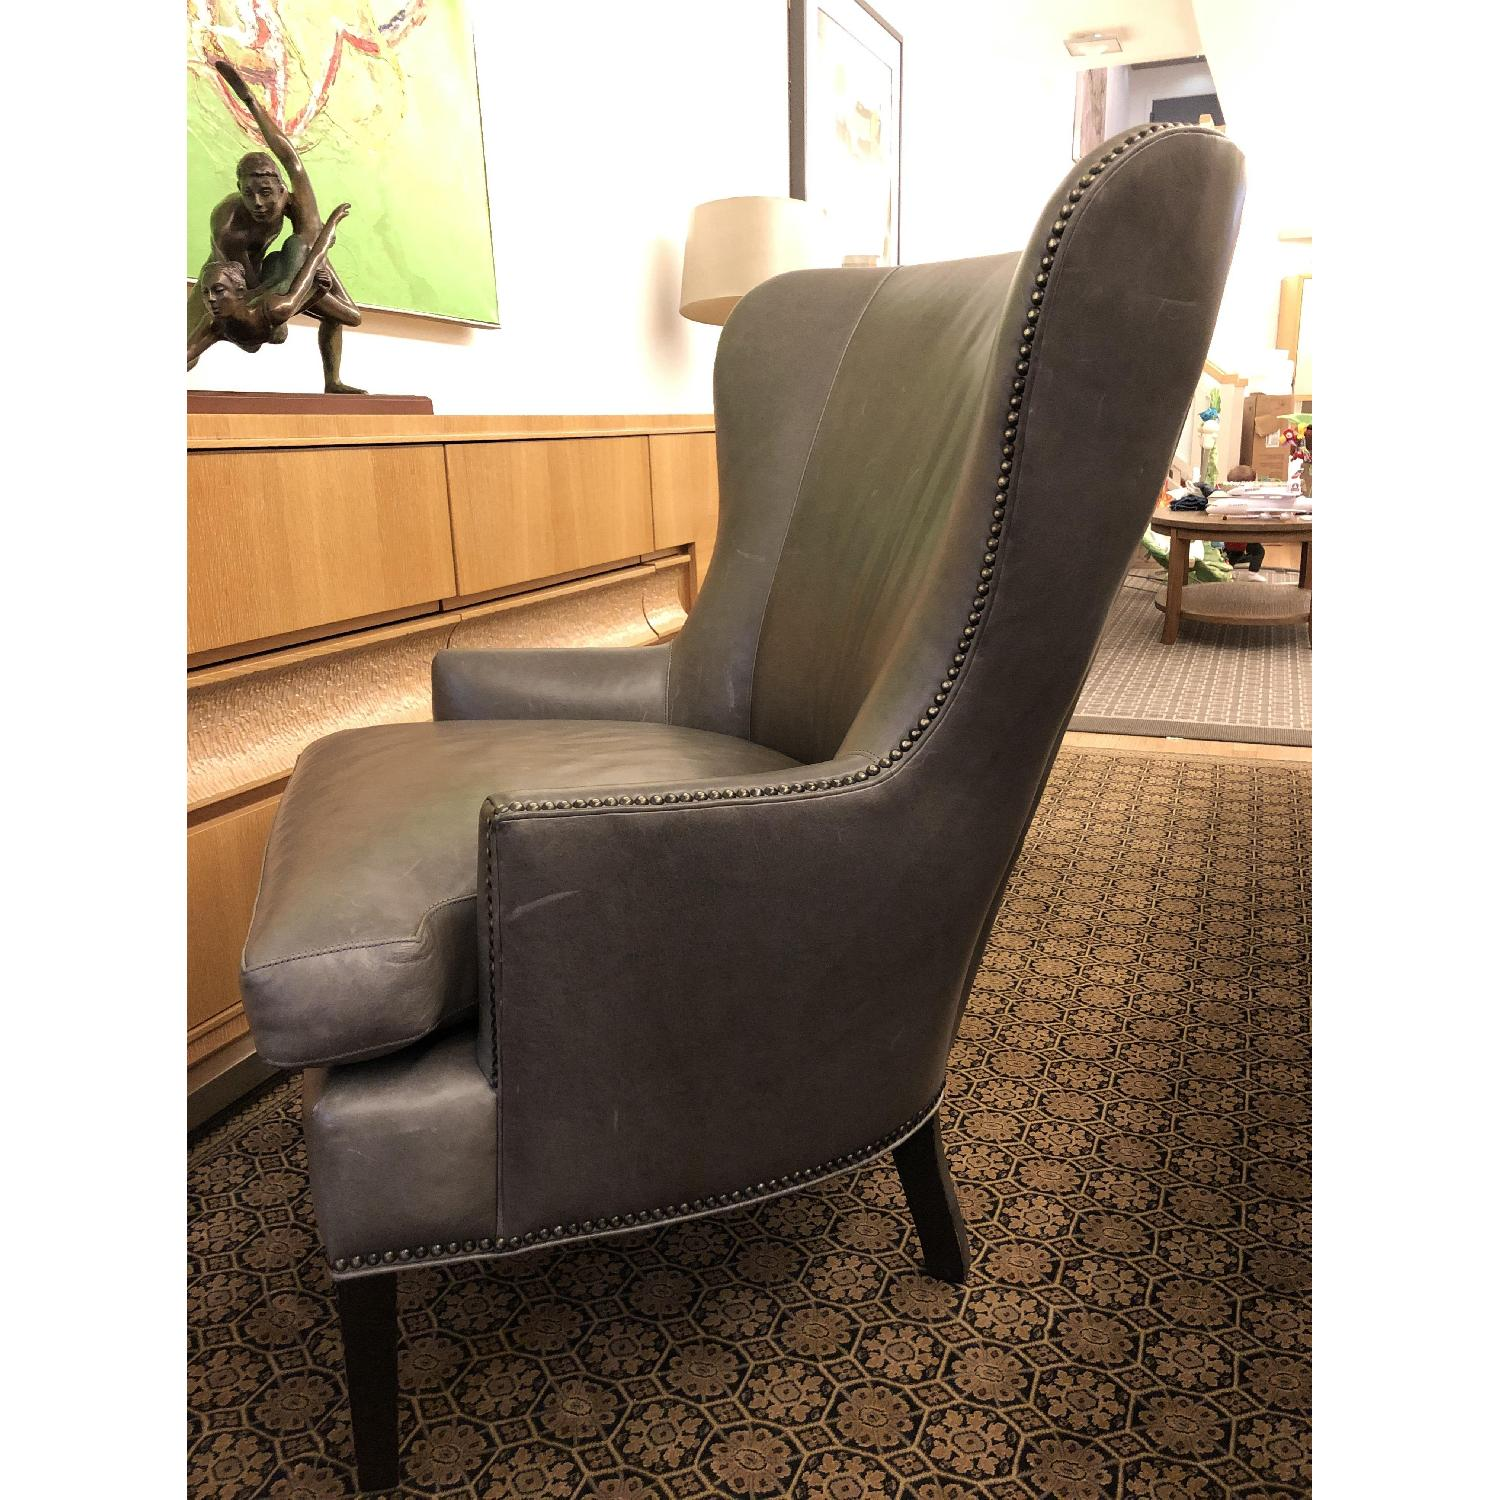 Crate & Barrel Dylan Leather Armchair w/ Metal Studs-1